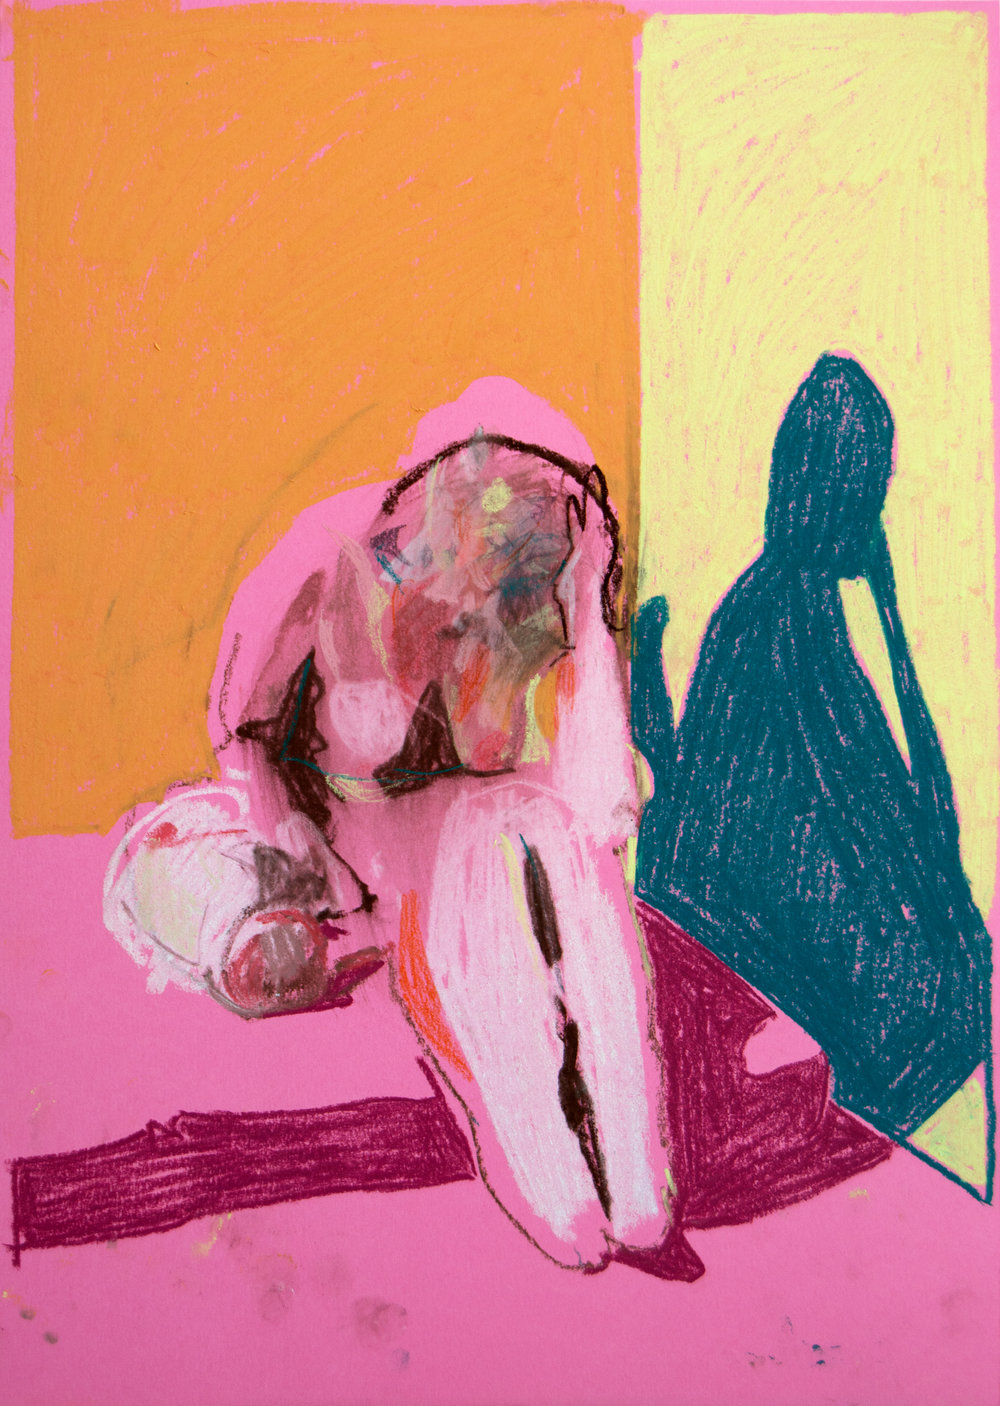 'Mother, model and child on pink with orange wall', 2018, pastel, 42 x 29.7cm, £450  Available from  Partnership Editions